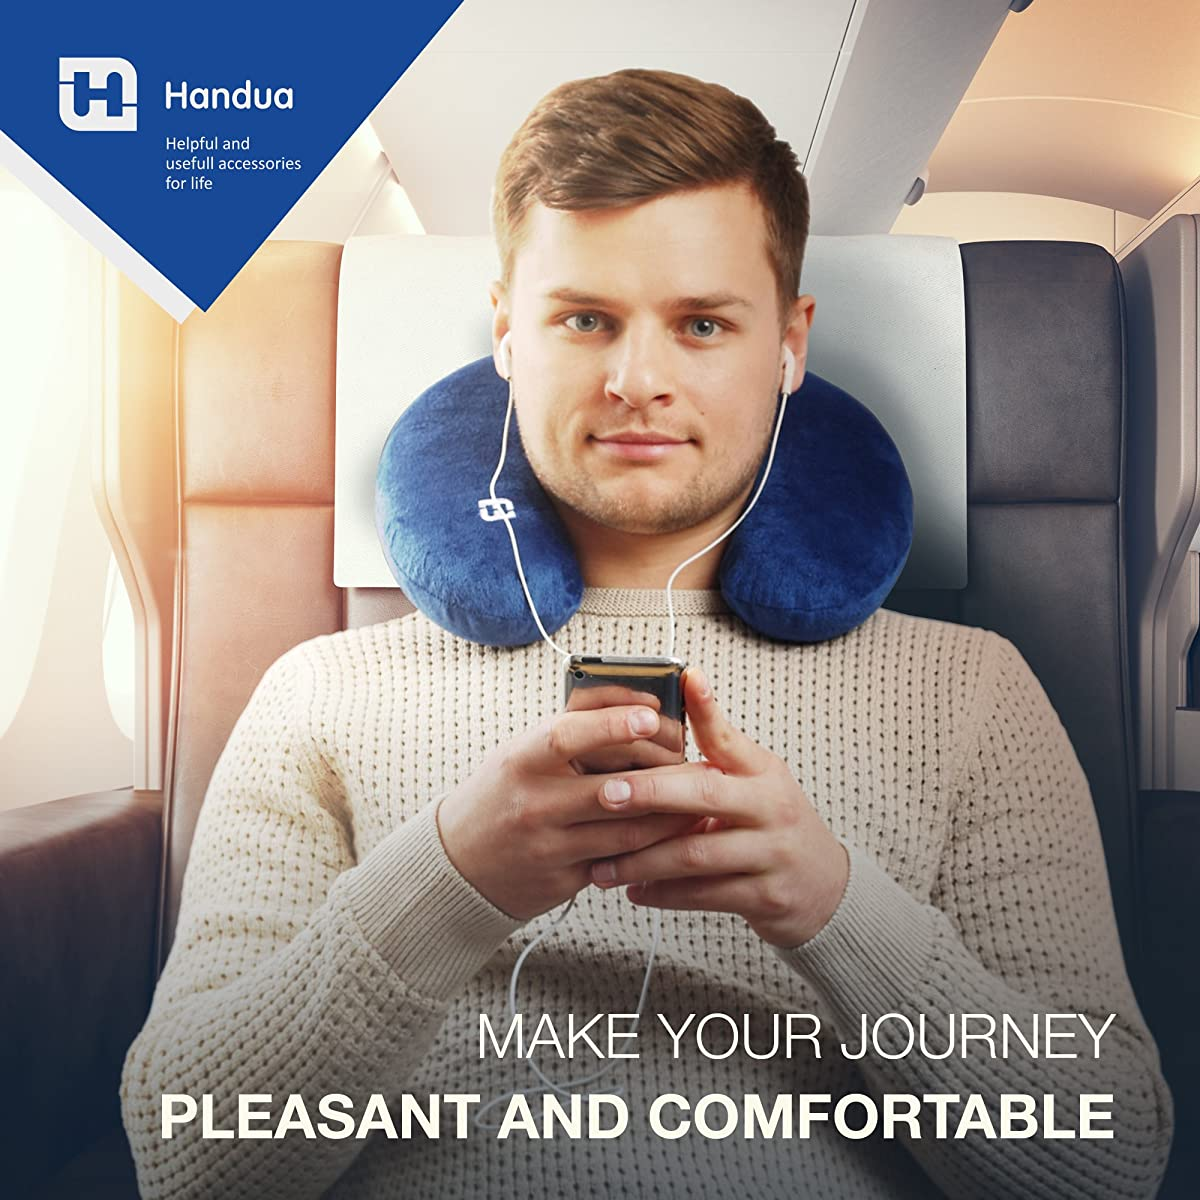 Travel Pillow made of Memory Foam with 3 Pillow Cases - Your Best Neck Support on a Train, Airplane, Car, Bus or Camping - Comfortable U Shaped Cushion. Plane travel pillow. Neck support pillow